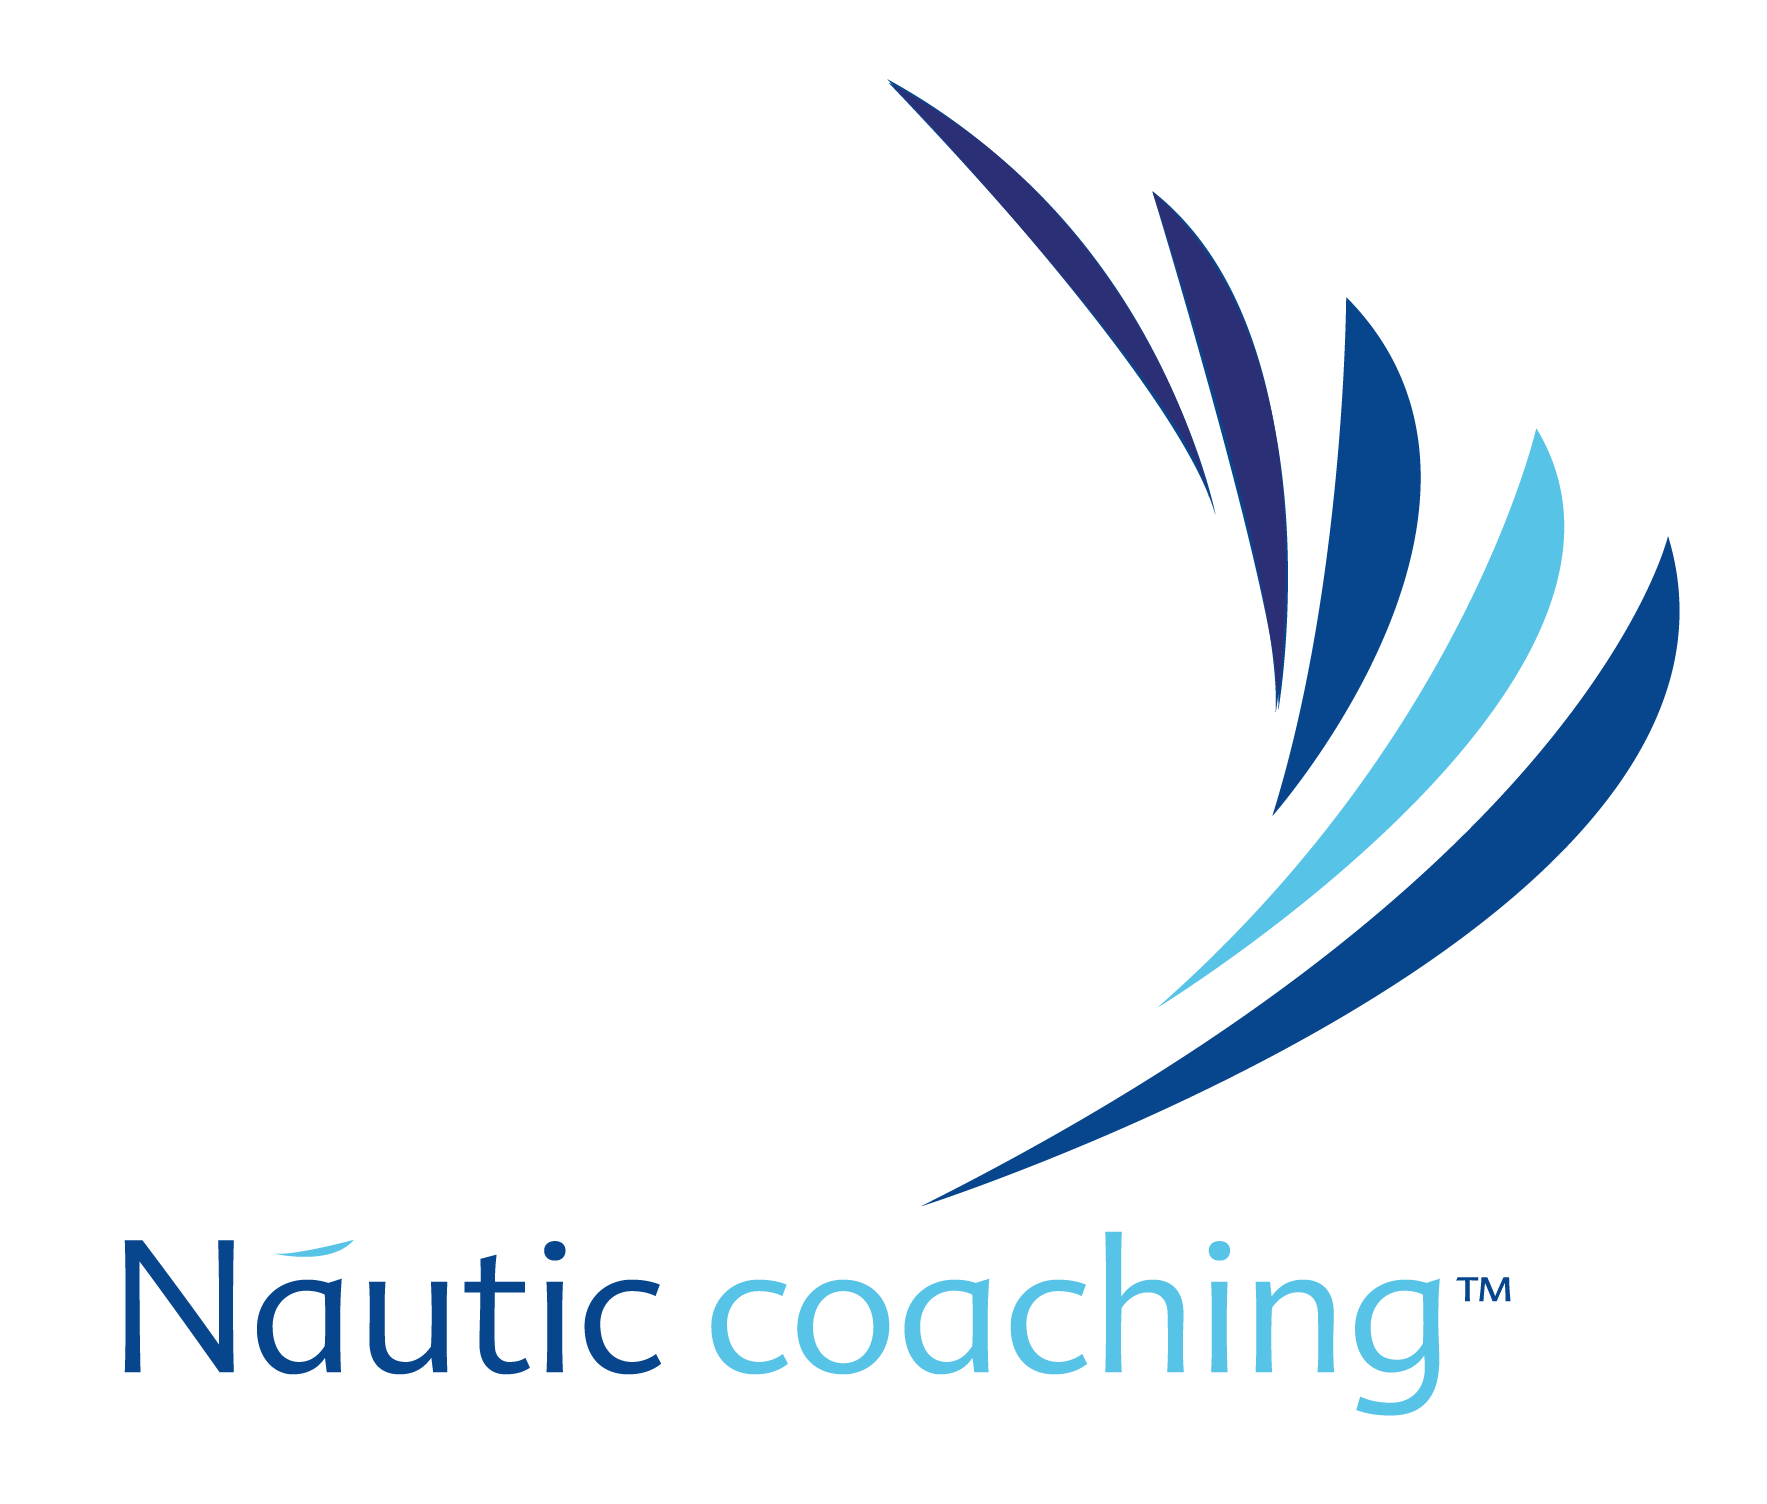 Nautic Coaching